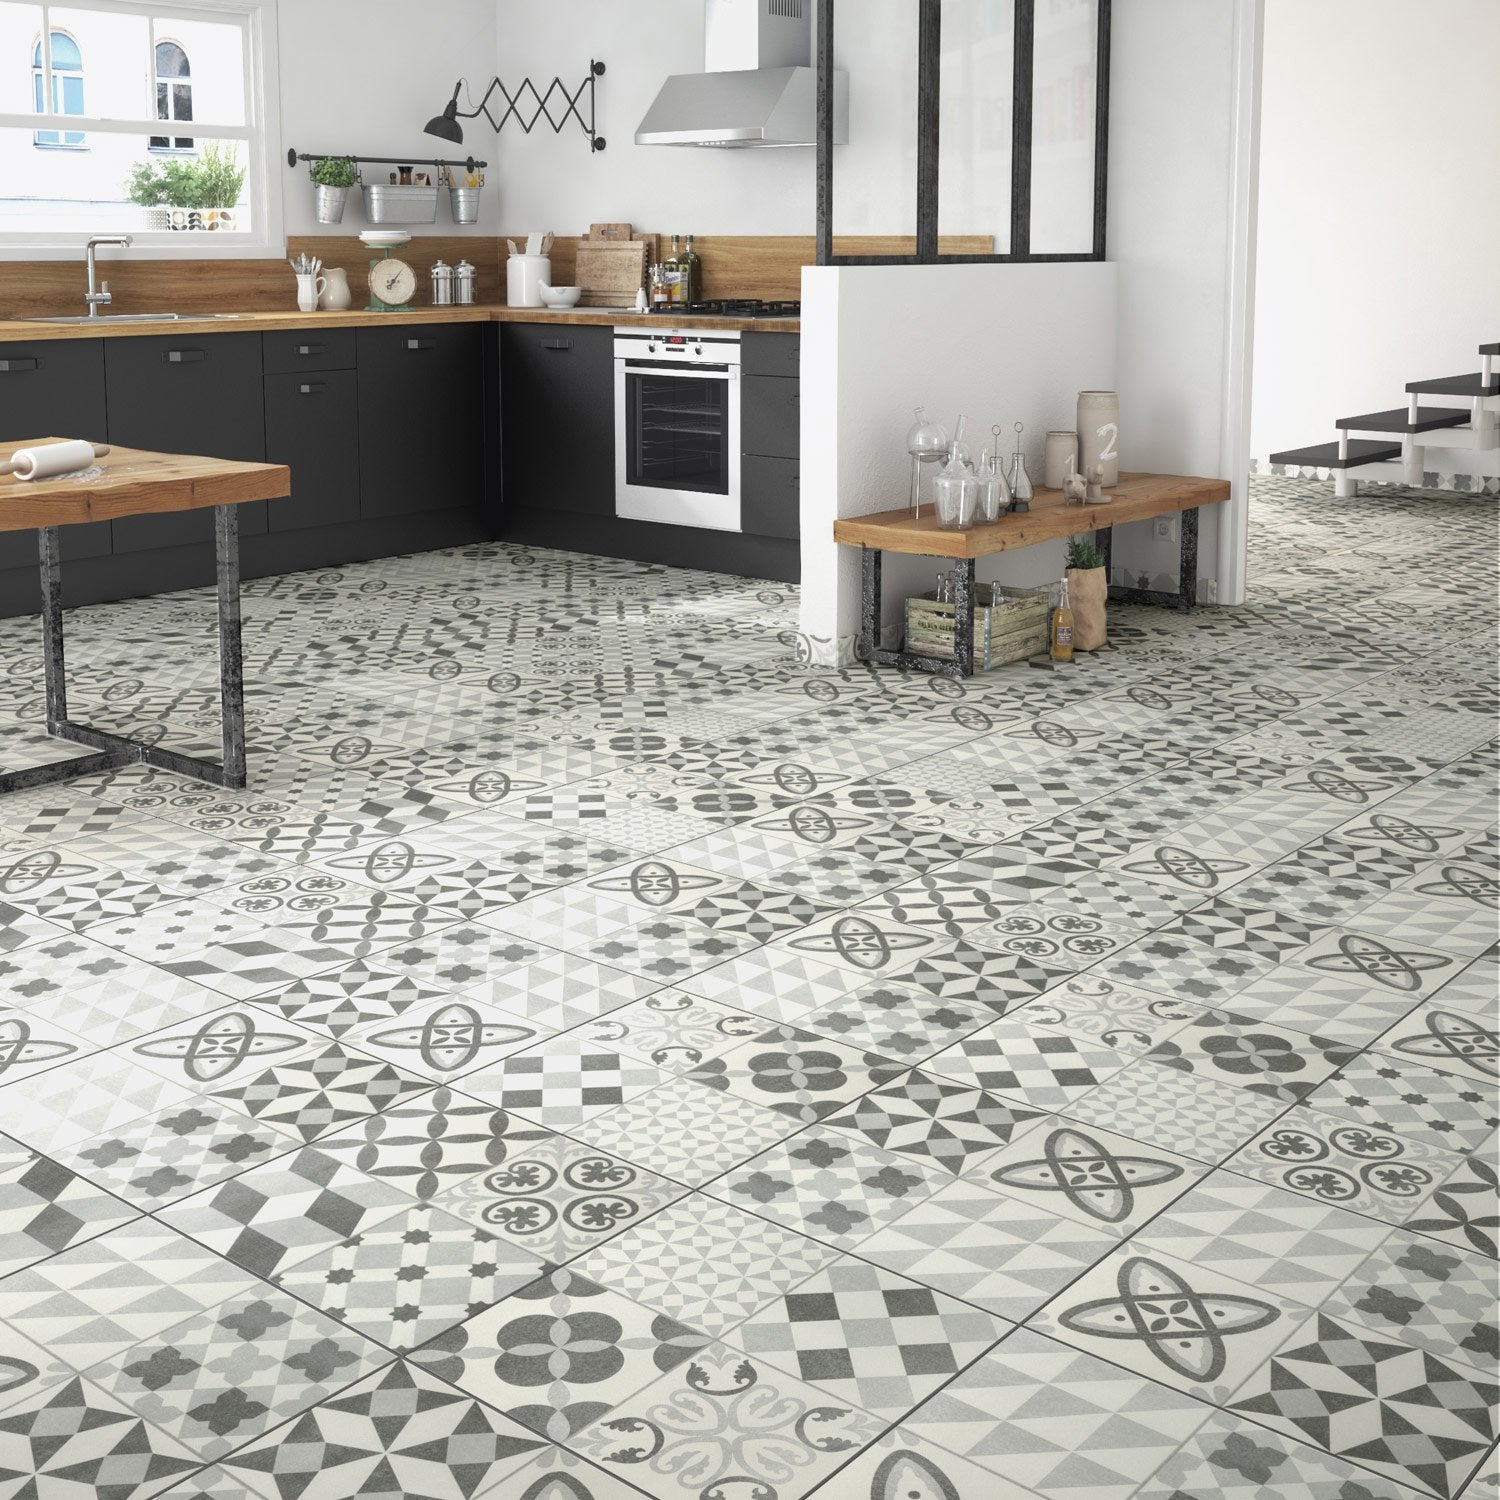 Carrelage leroy merlin gris maison design for Carrelage sol